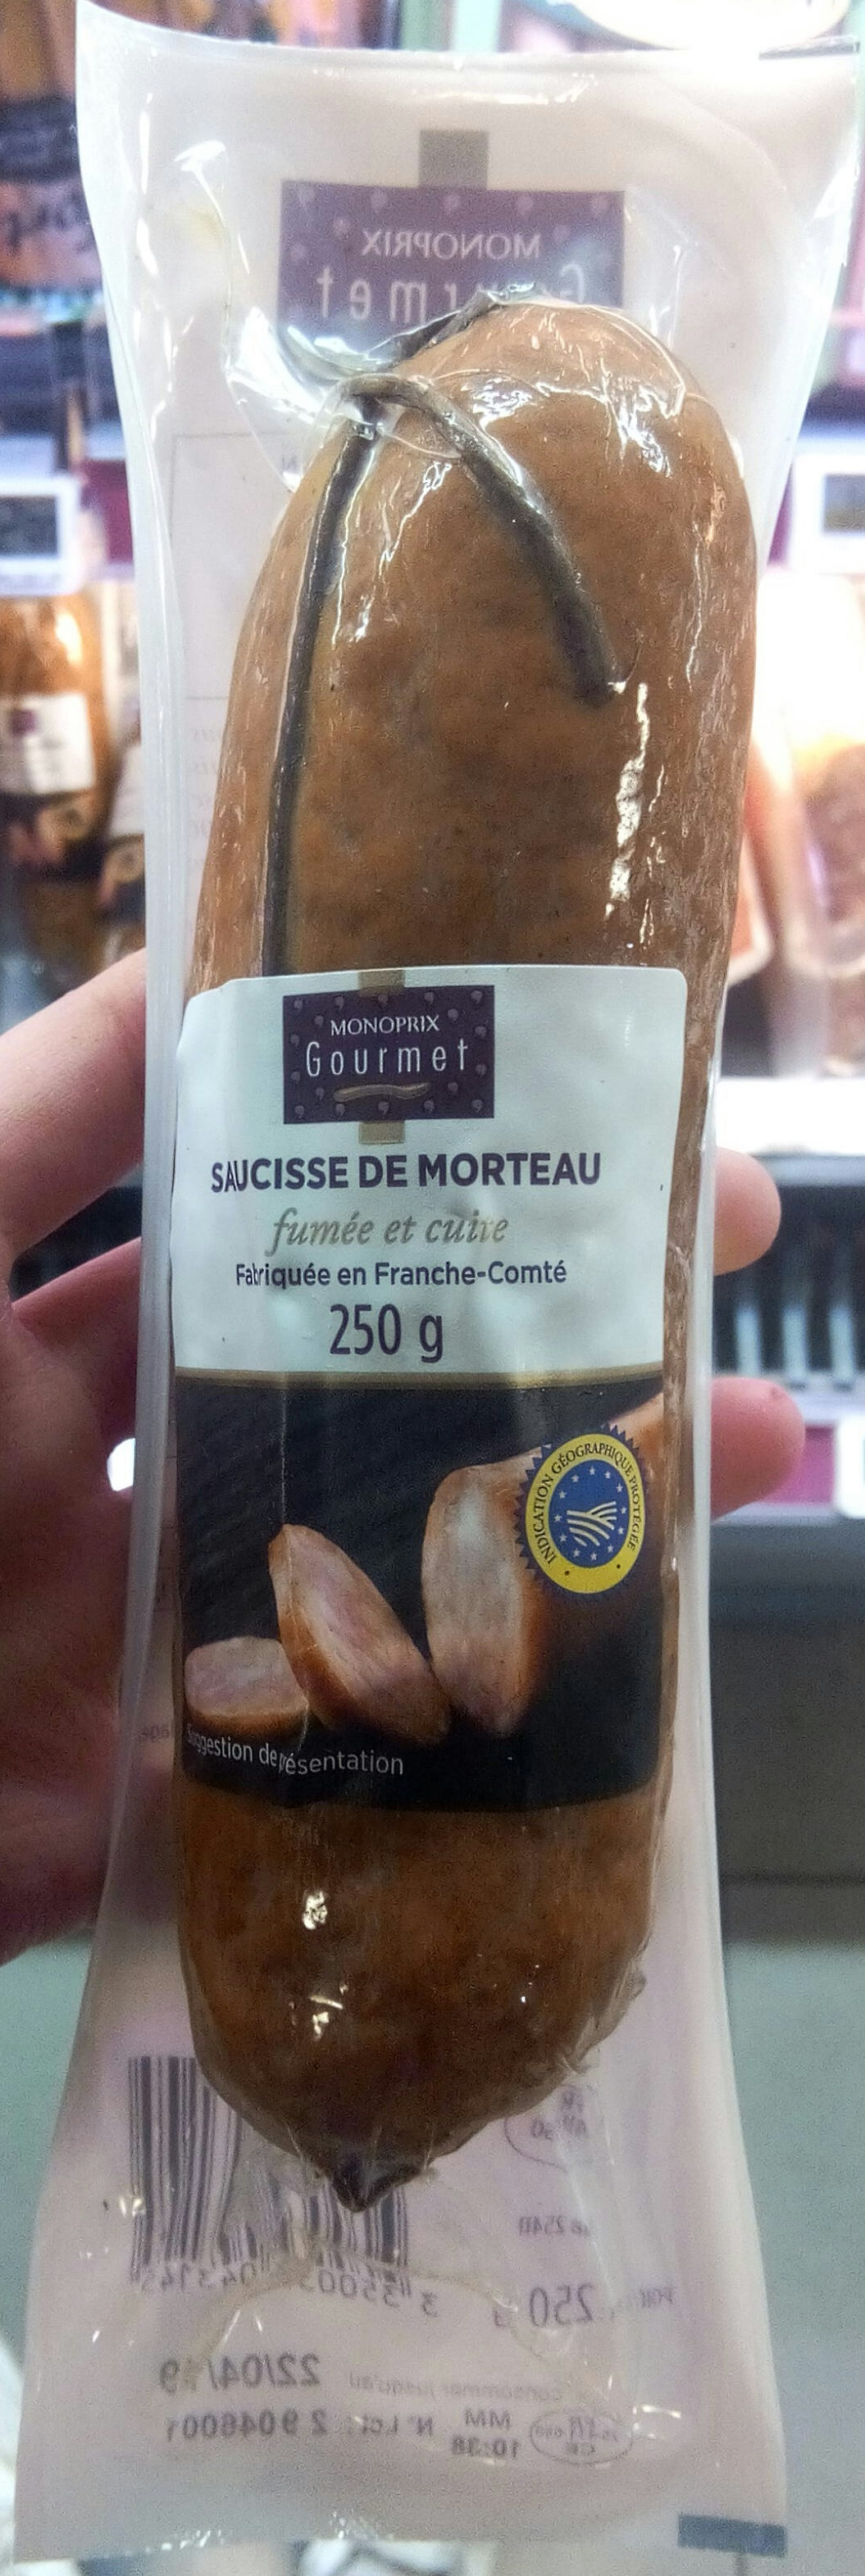 Saucisse de morteau - Product